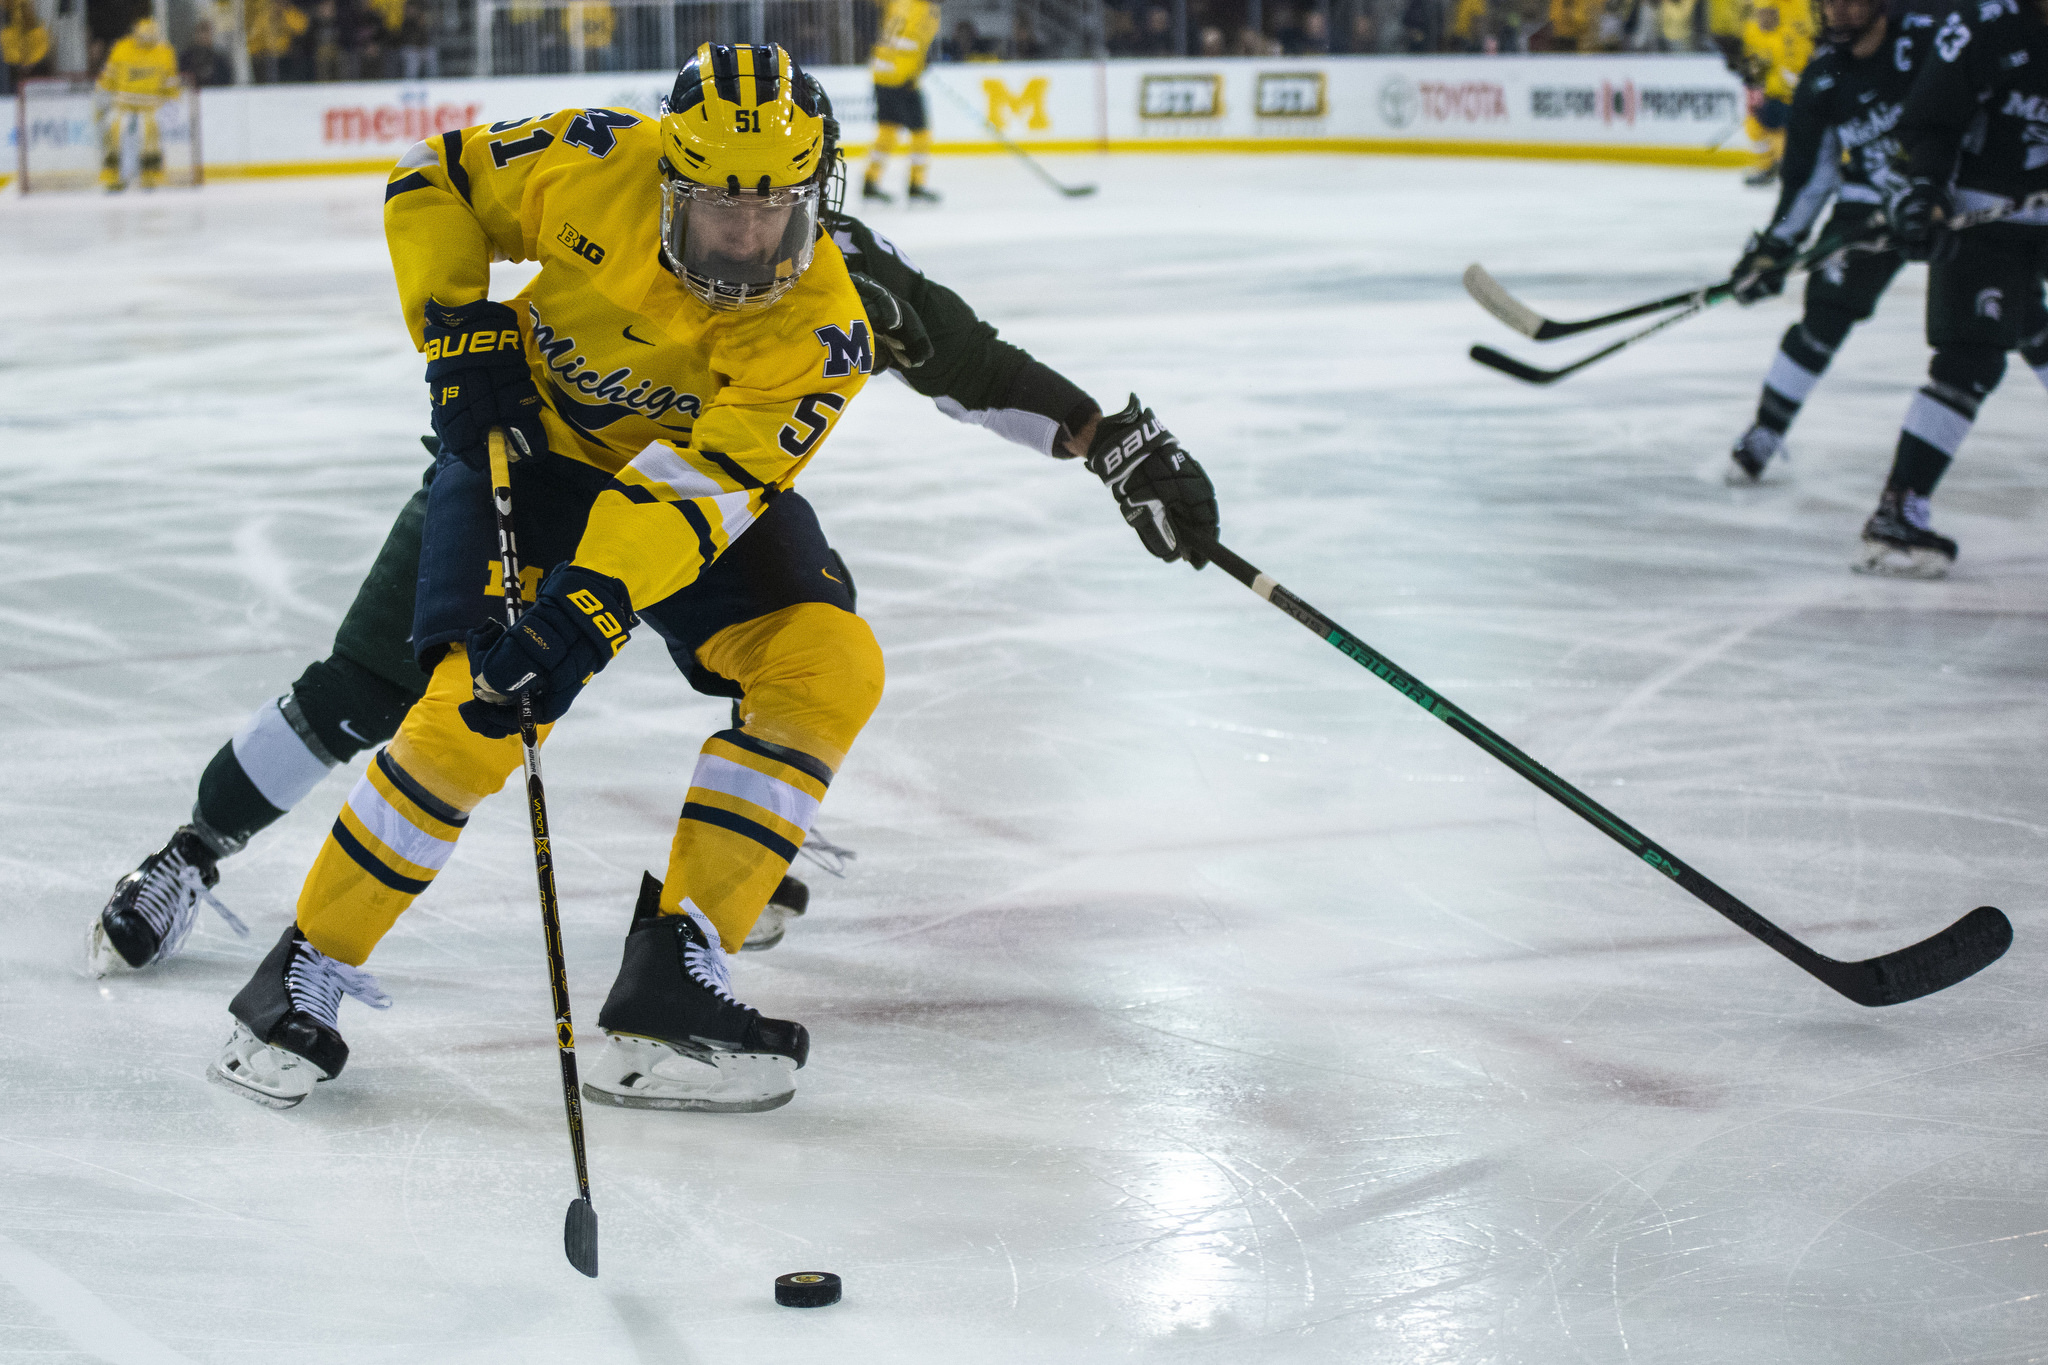 Garrett Van Wyhe skates against Michigan State in the Great Lakes Invitational